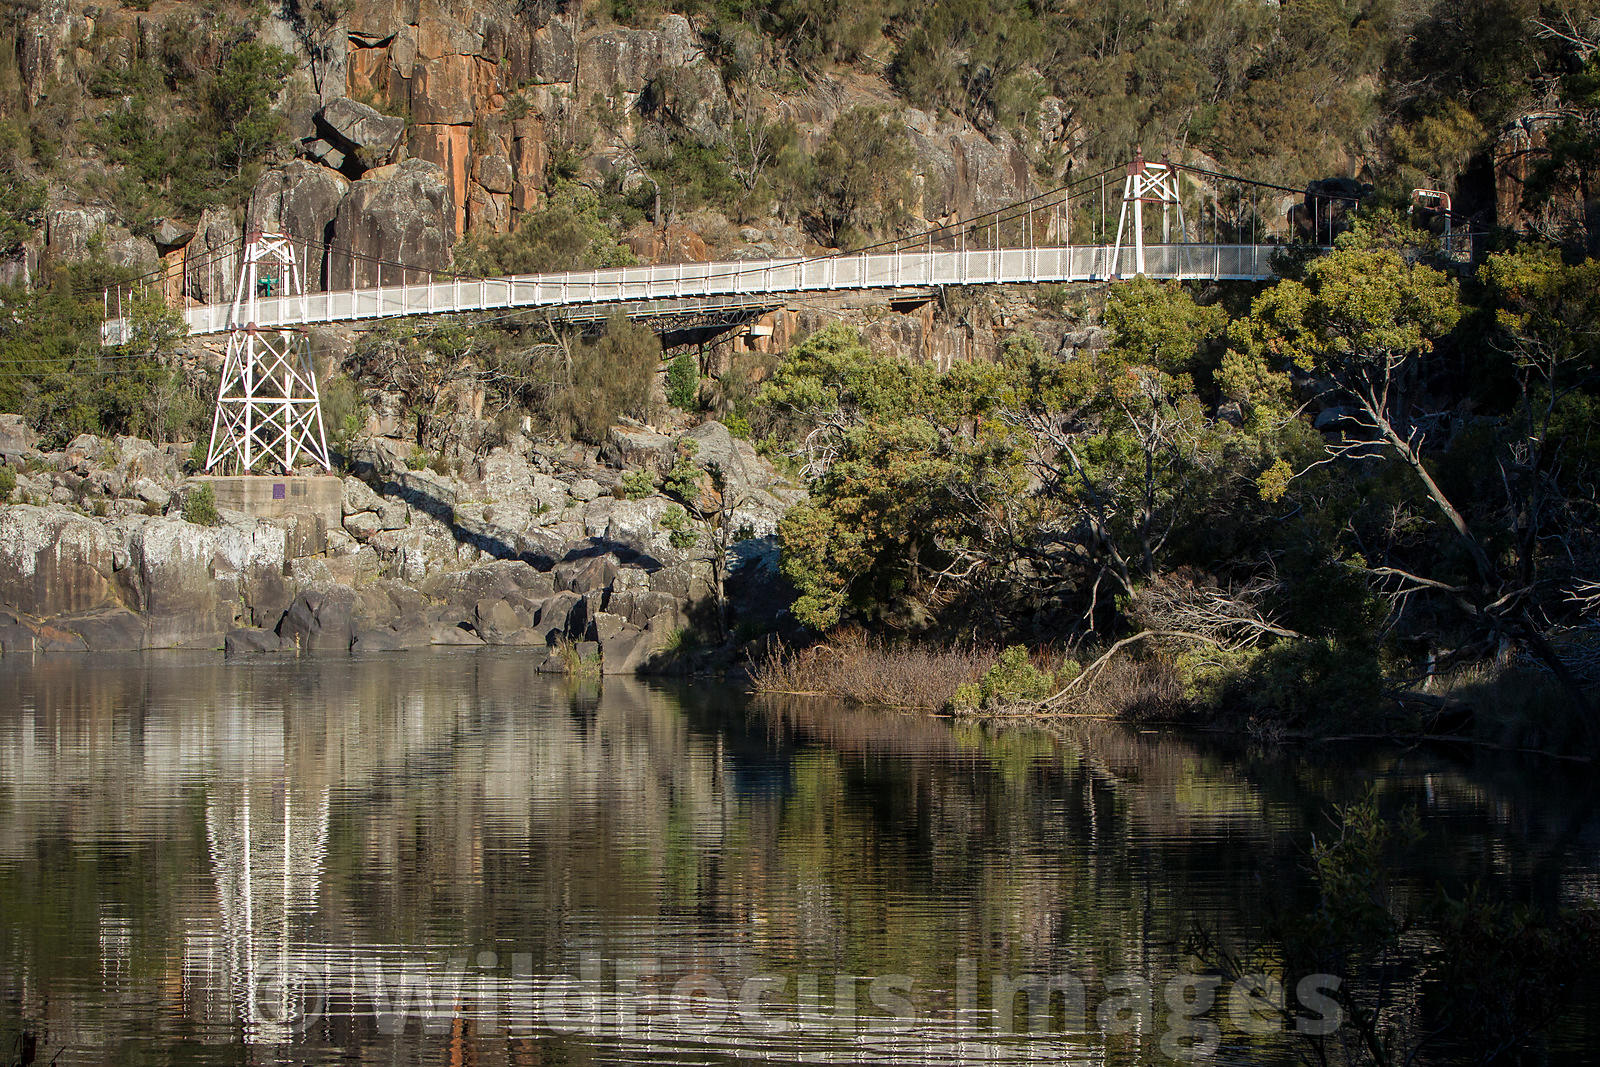 Alexandra suspension bridge at Cataract Gorge, Launceston, Tasmania, Australia; Landscape